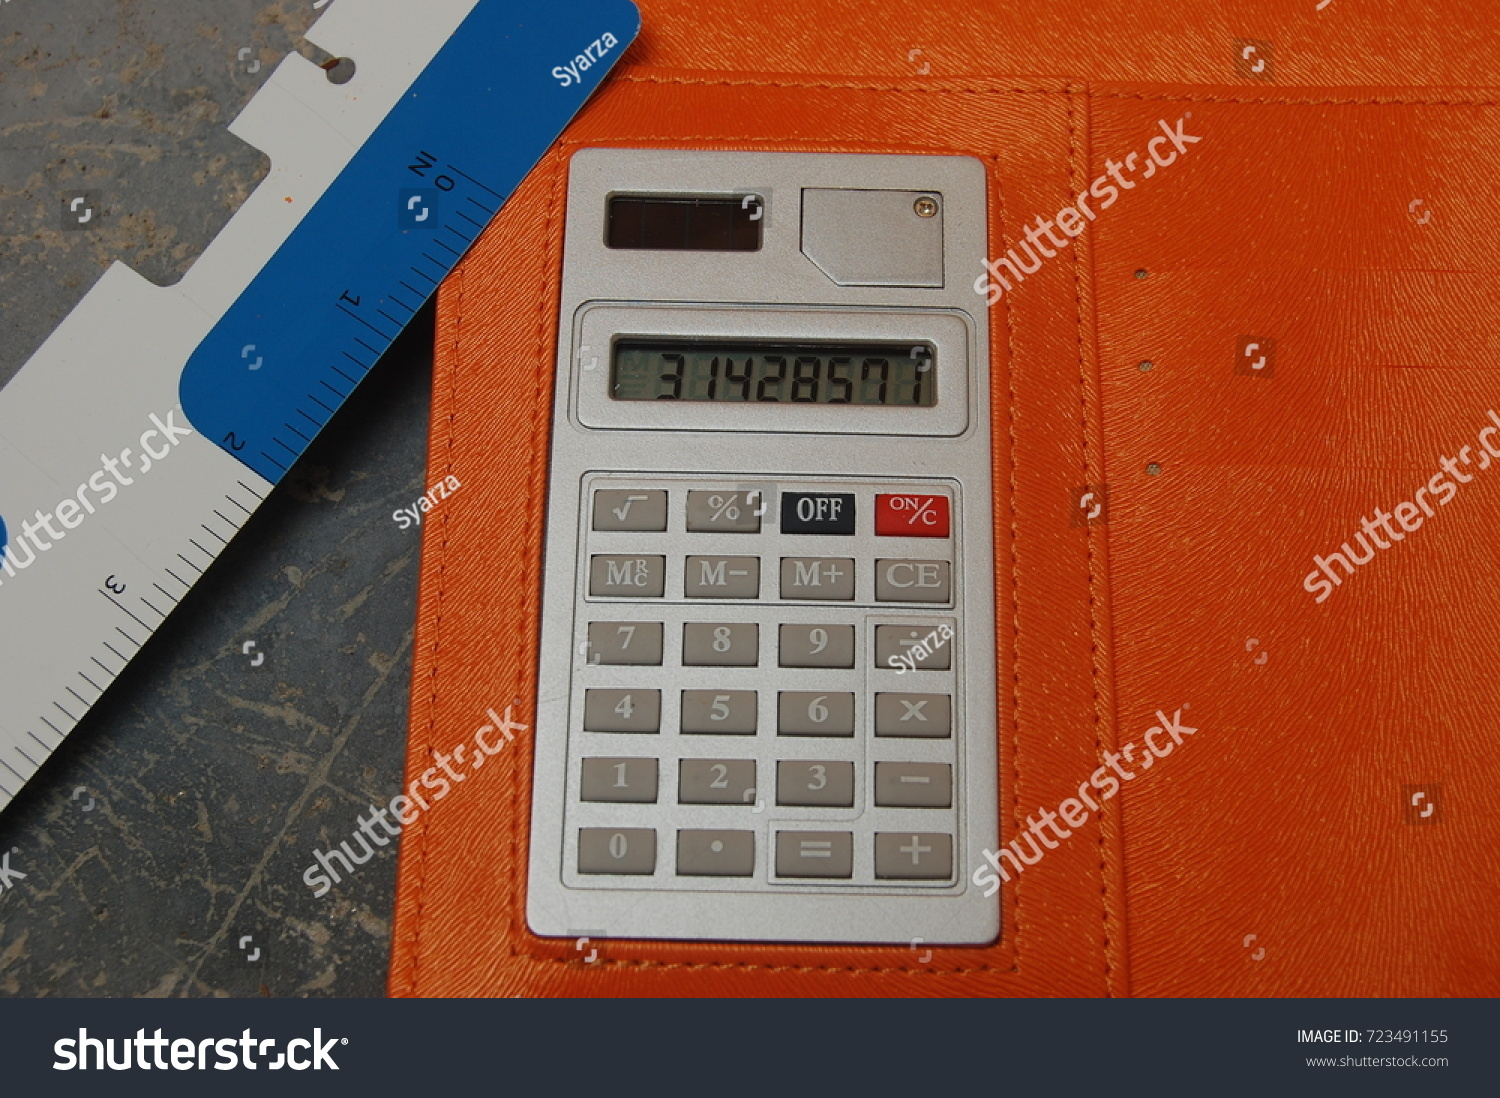 calculator ruler calculate pi value that stock photo edit now